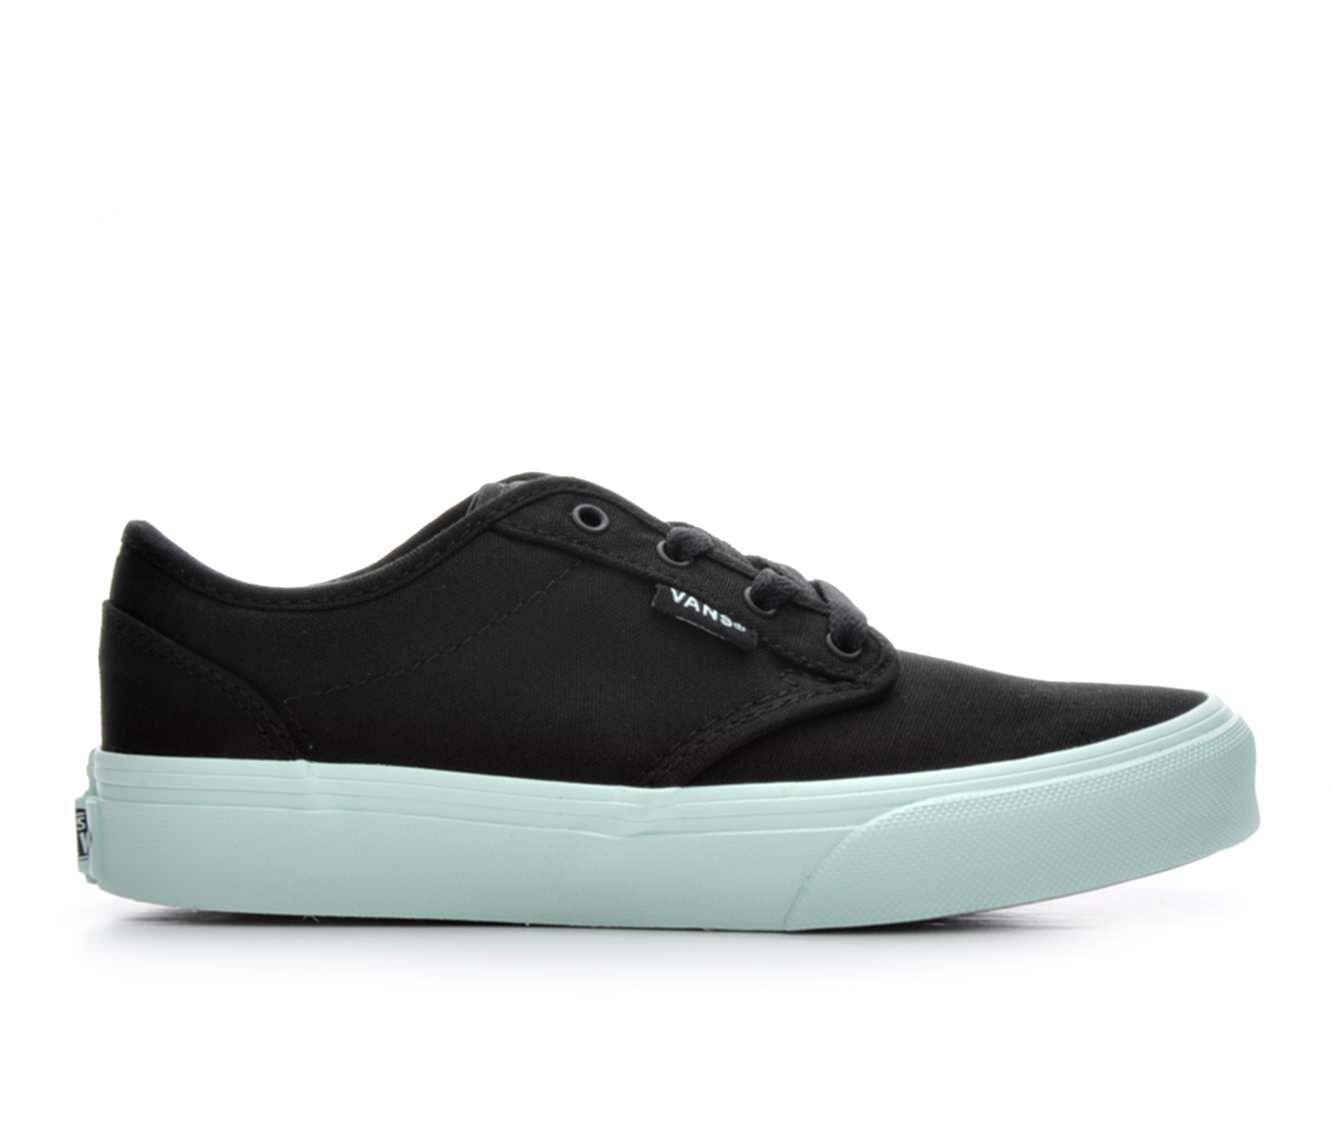 vans atwood mens skate shoes